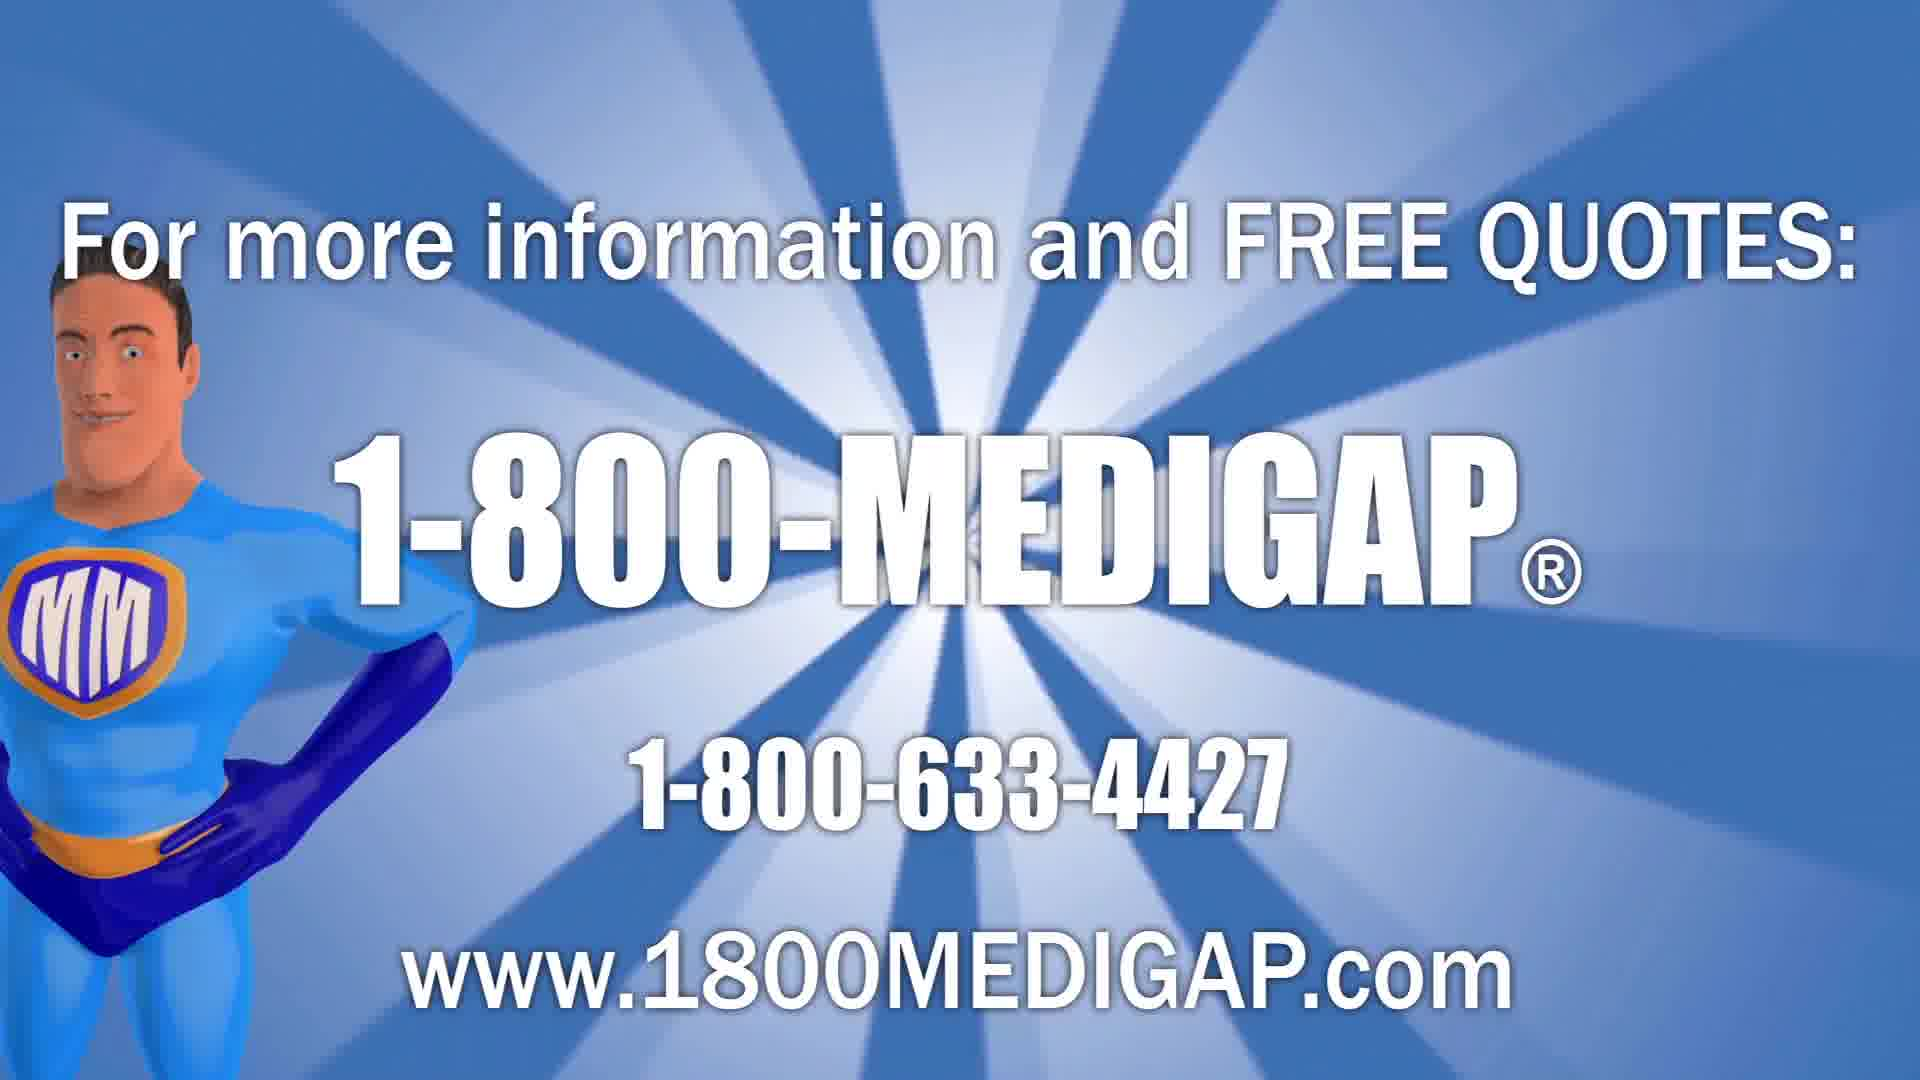 Top medigap plans in Georgia